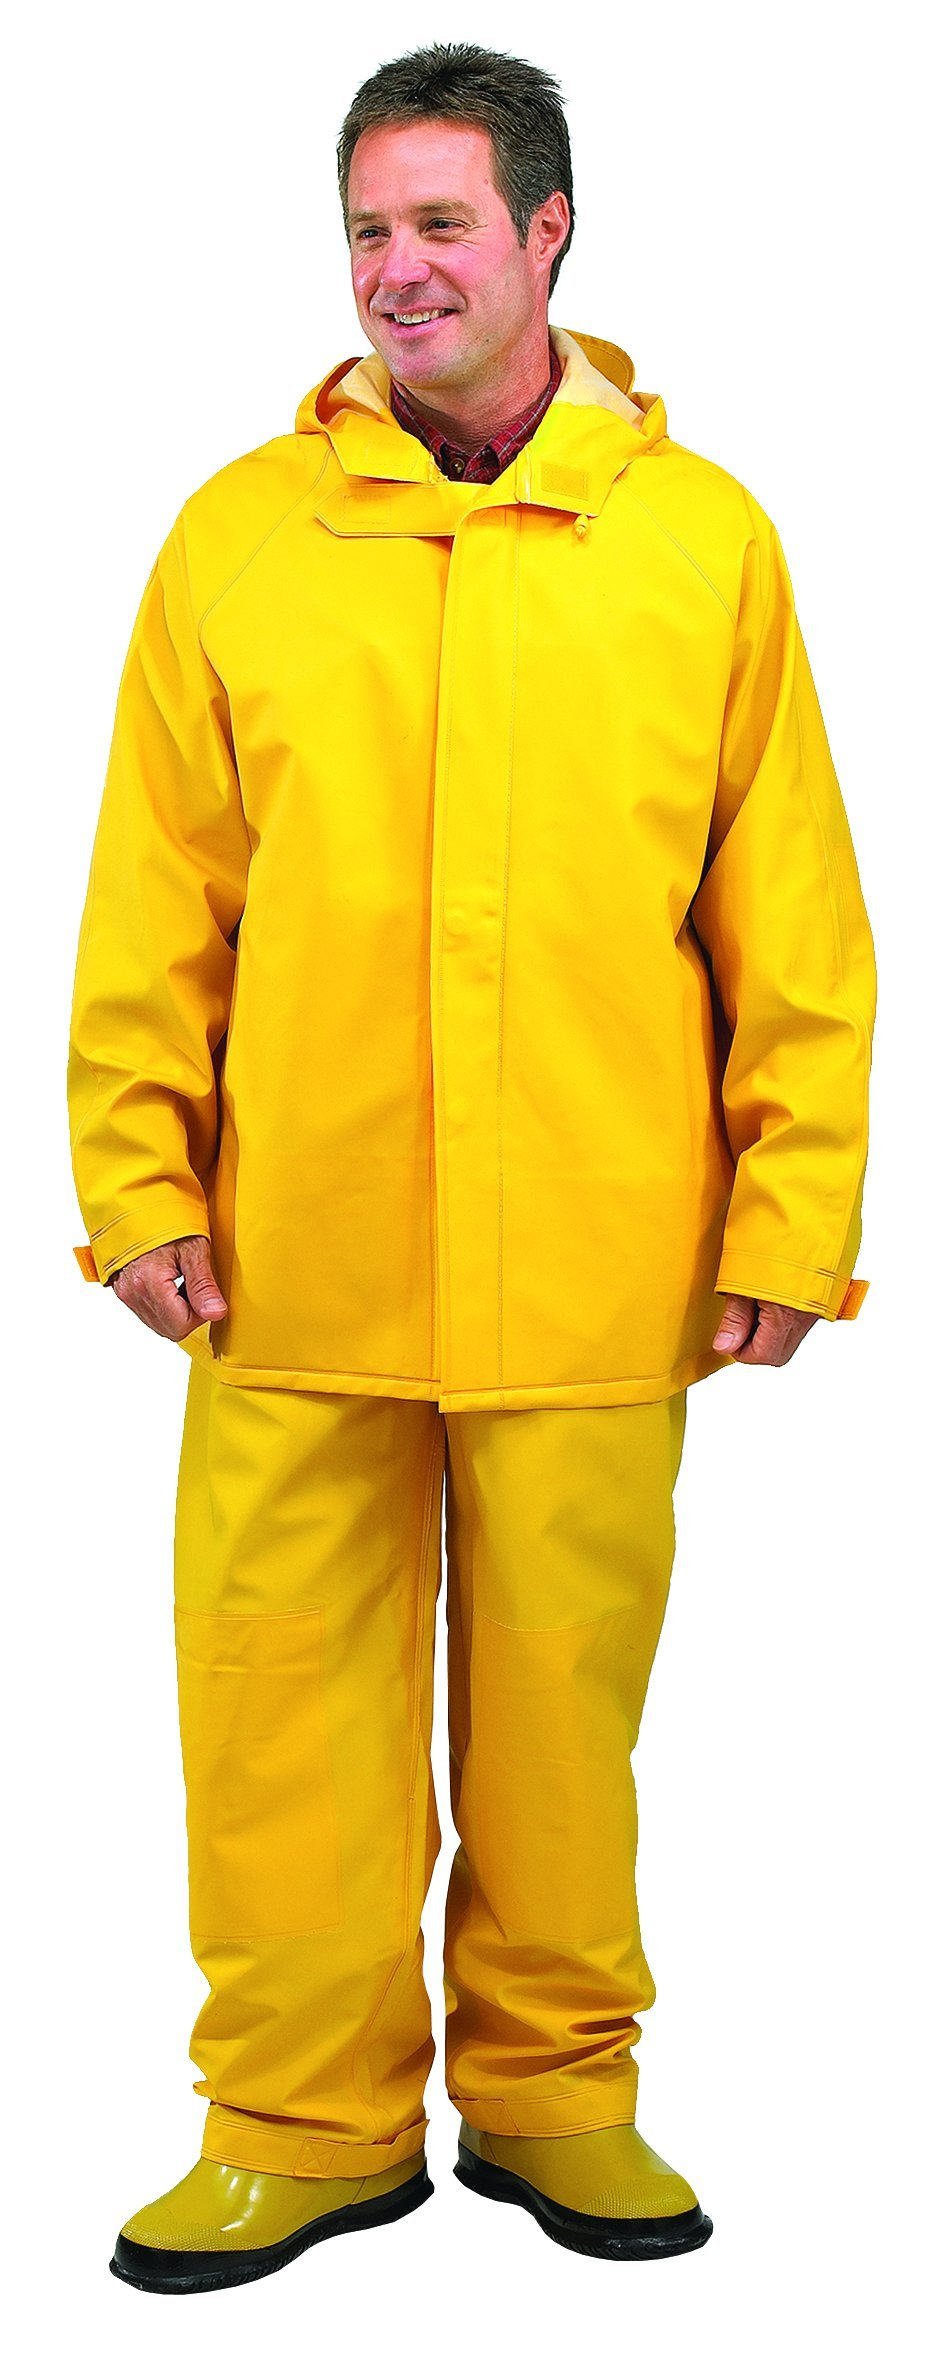 Galeton 7953-XXXL-YW 7953 Repel Rainwear 0.50 mm PVC 2-Layer Rain Suit, Yellow, 3X-Large by Galeton